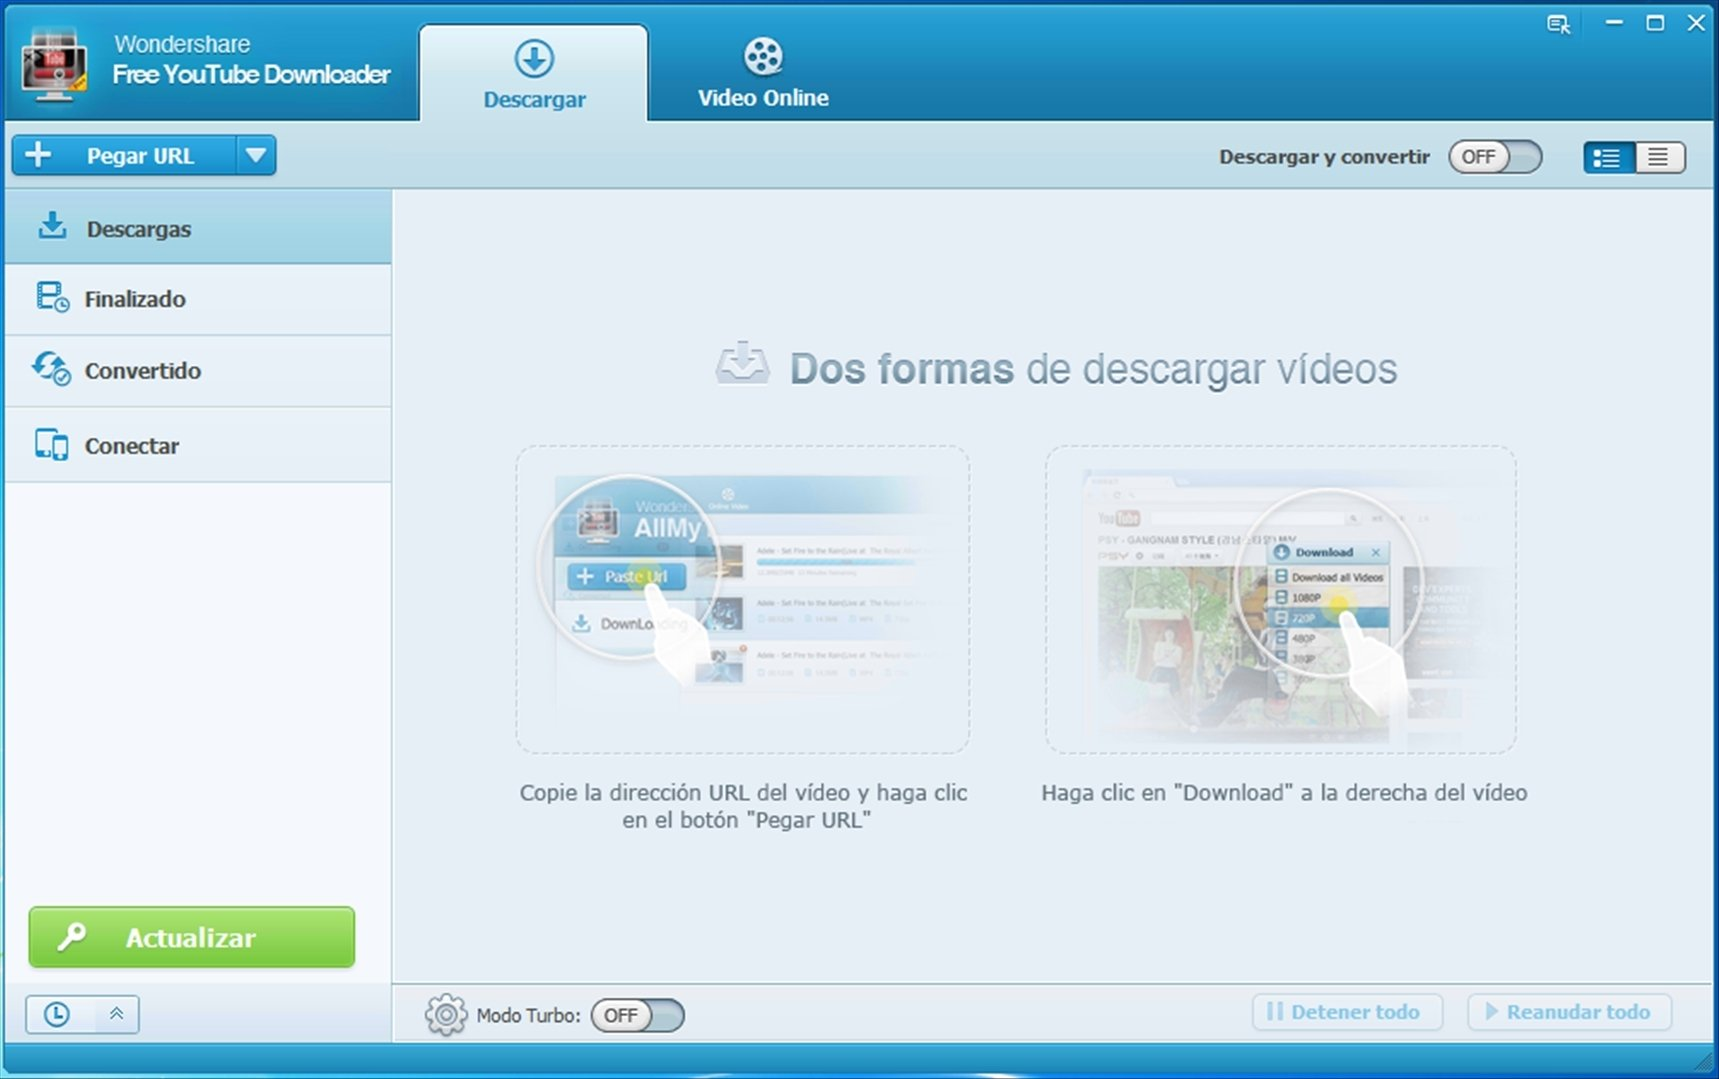 Wondershare Free YouTube Downloader image 5